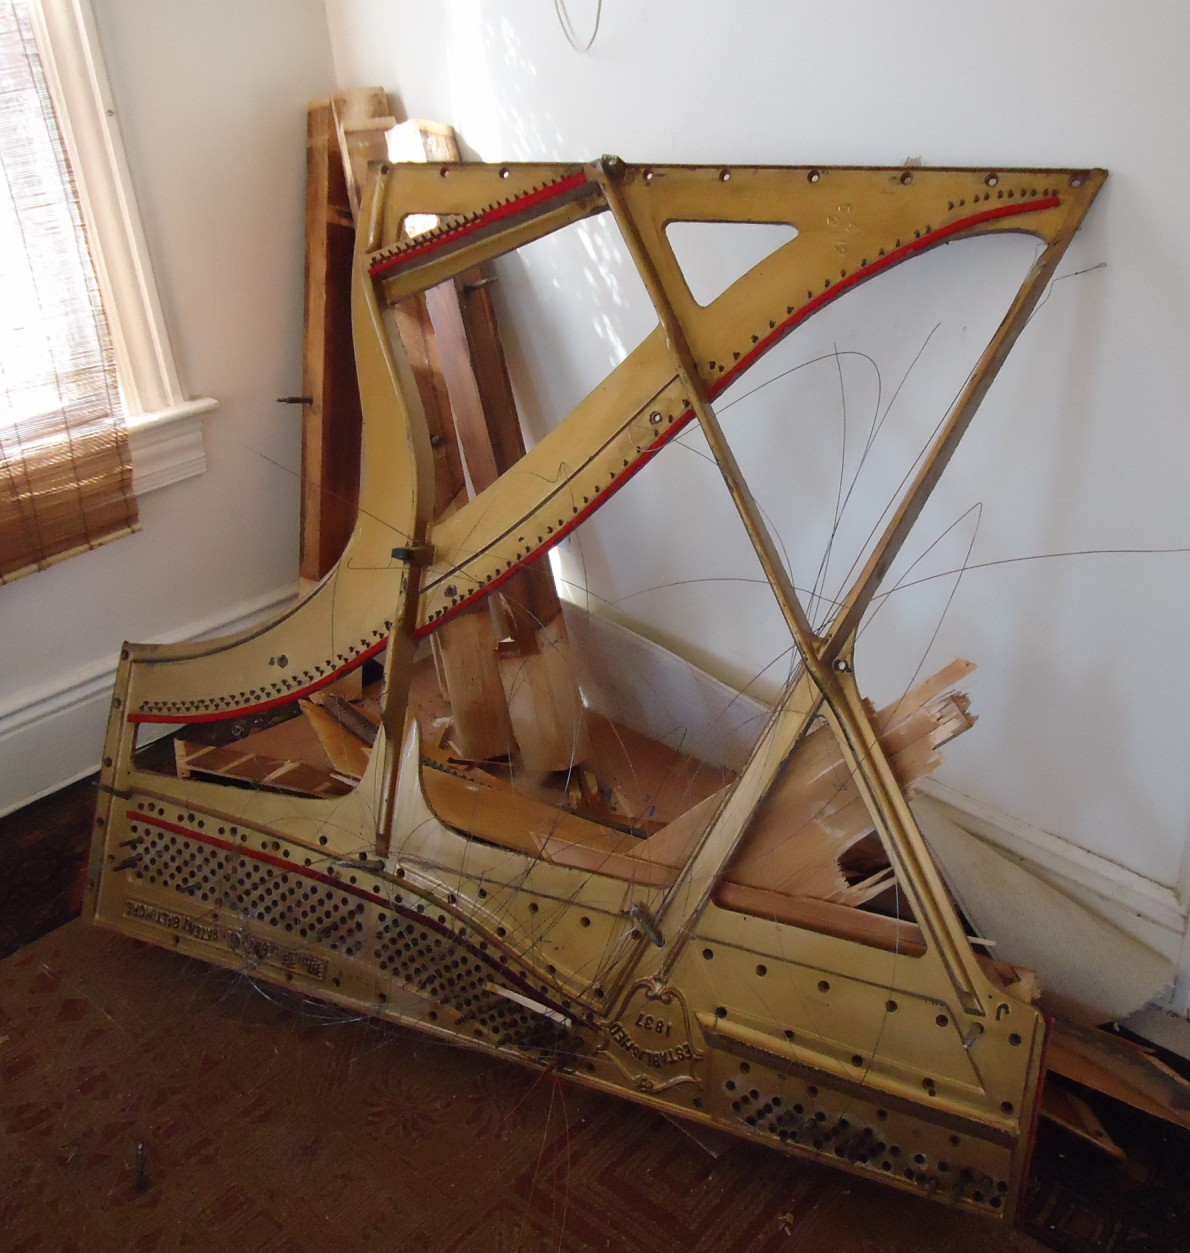 File:Demolition of upright Knabe piano cast iron string frame.JPG ...